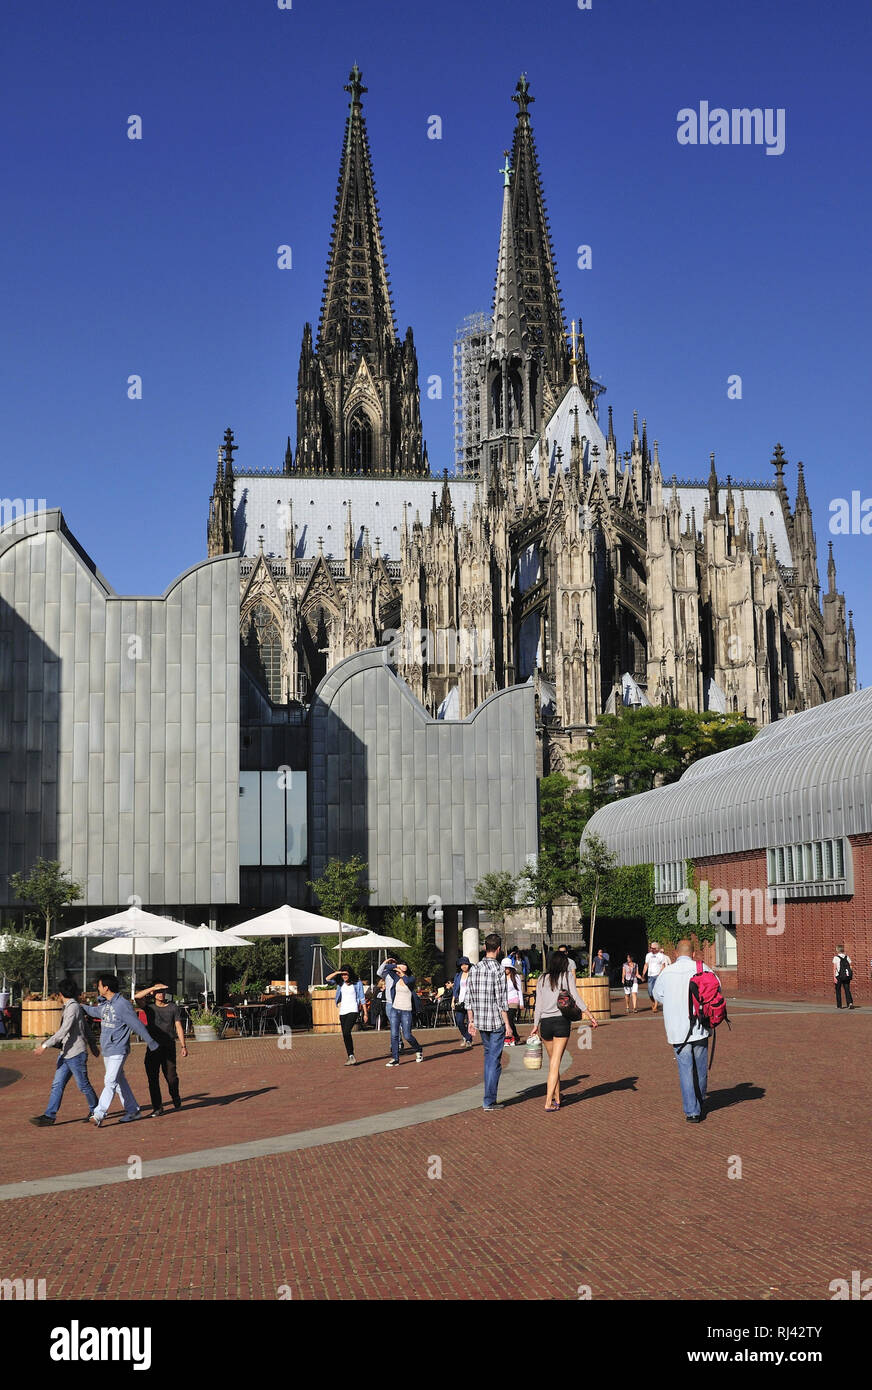 Deutschland, Nordrhein-Westfalen, Kˆln, City, Kˆlner Dom, links das Museum Ludwig am Heinrich-Bˆll-Platz, Passanten, Stock Photo